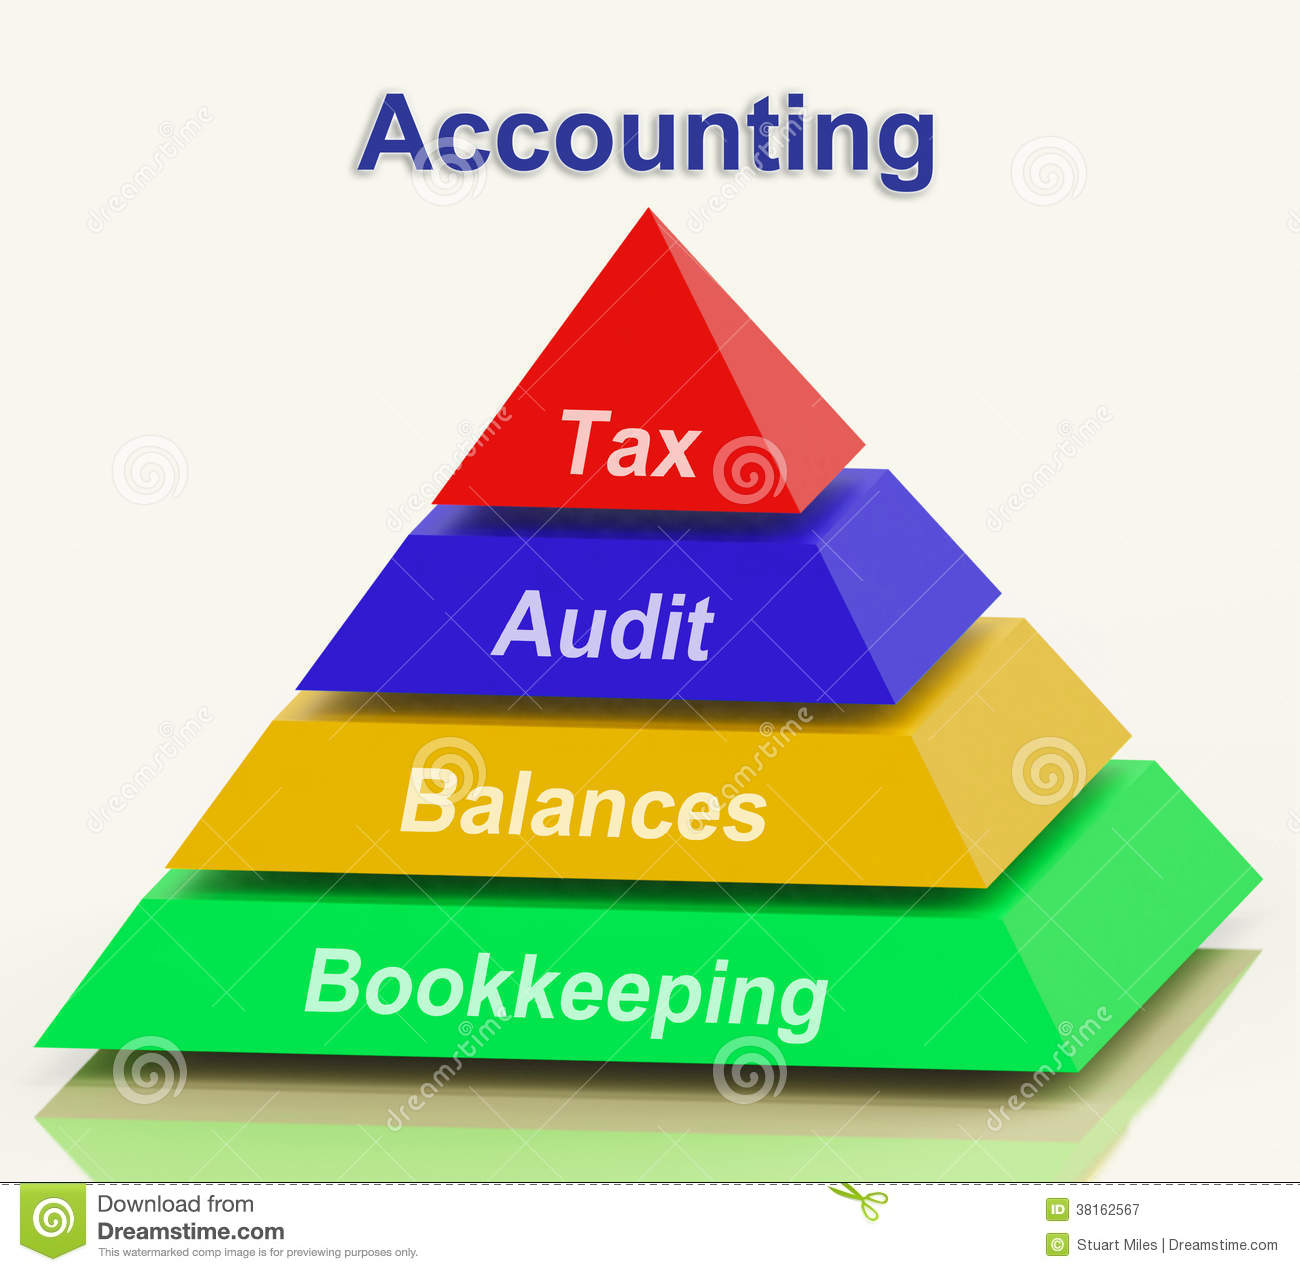 Free Stock Photography  Accounting Pyramid Shows Bookkeeping Balances